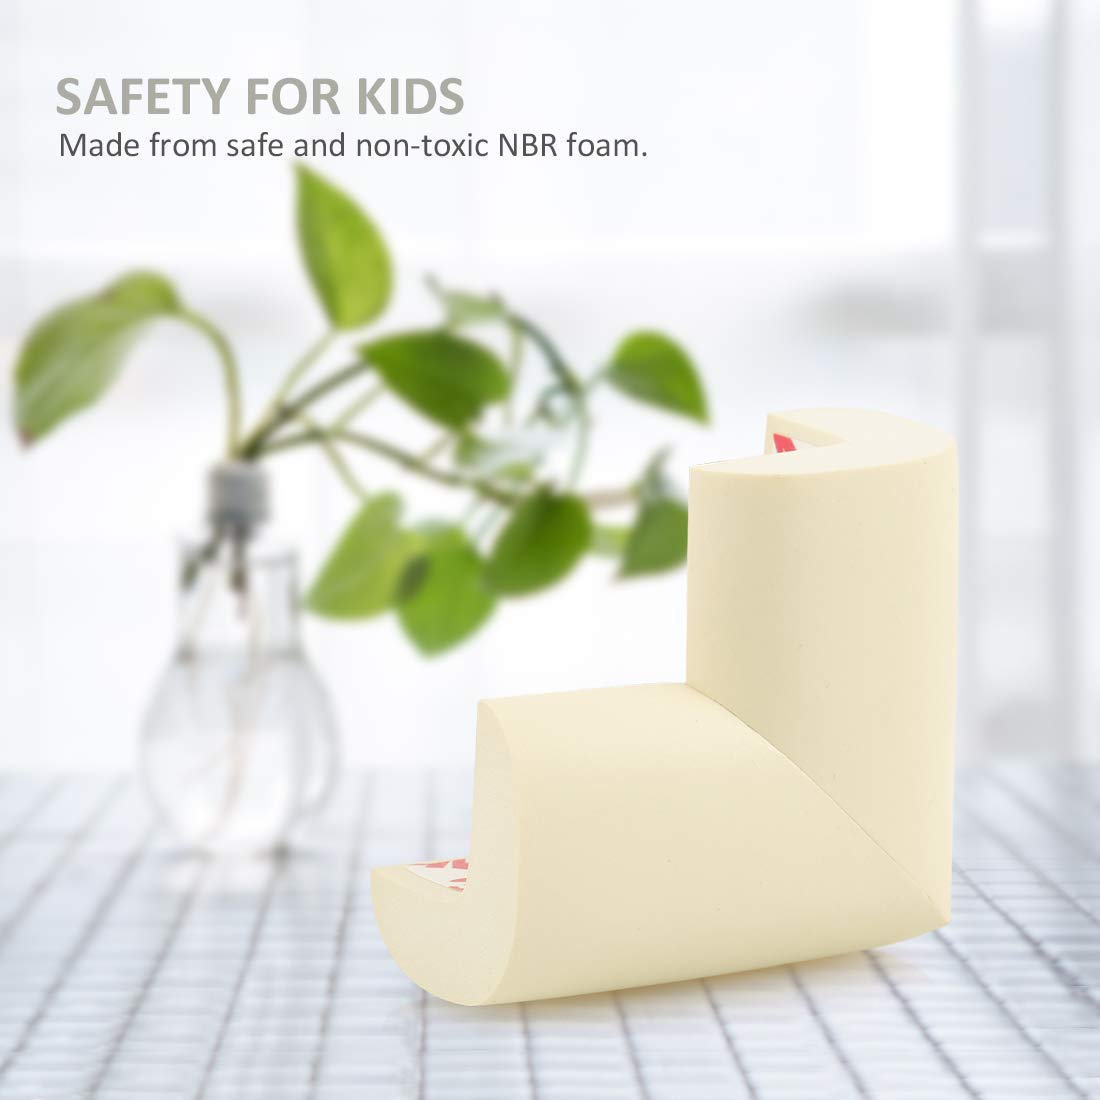 L-Shaped Brown PORUARY Soft Baby Proofing Corner Guards Edge Protectors 8 Pack with Pre-Taped 3M Tape Clear Corner Protectors Safe Corner Cushion